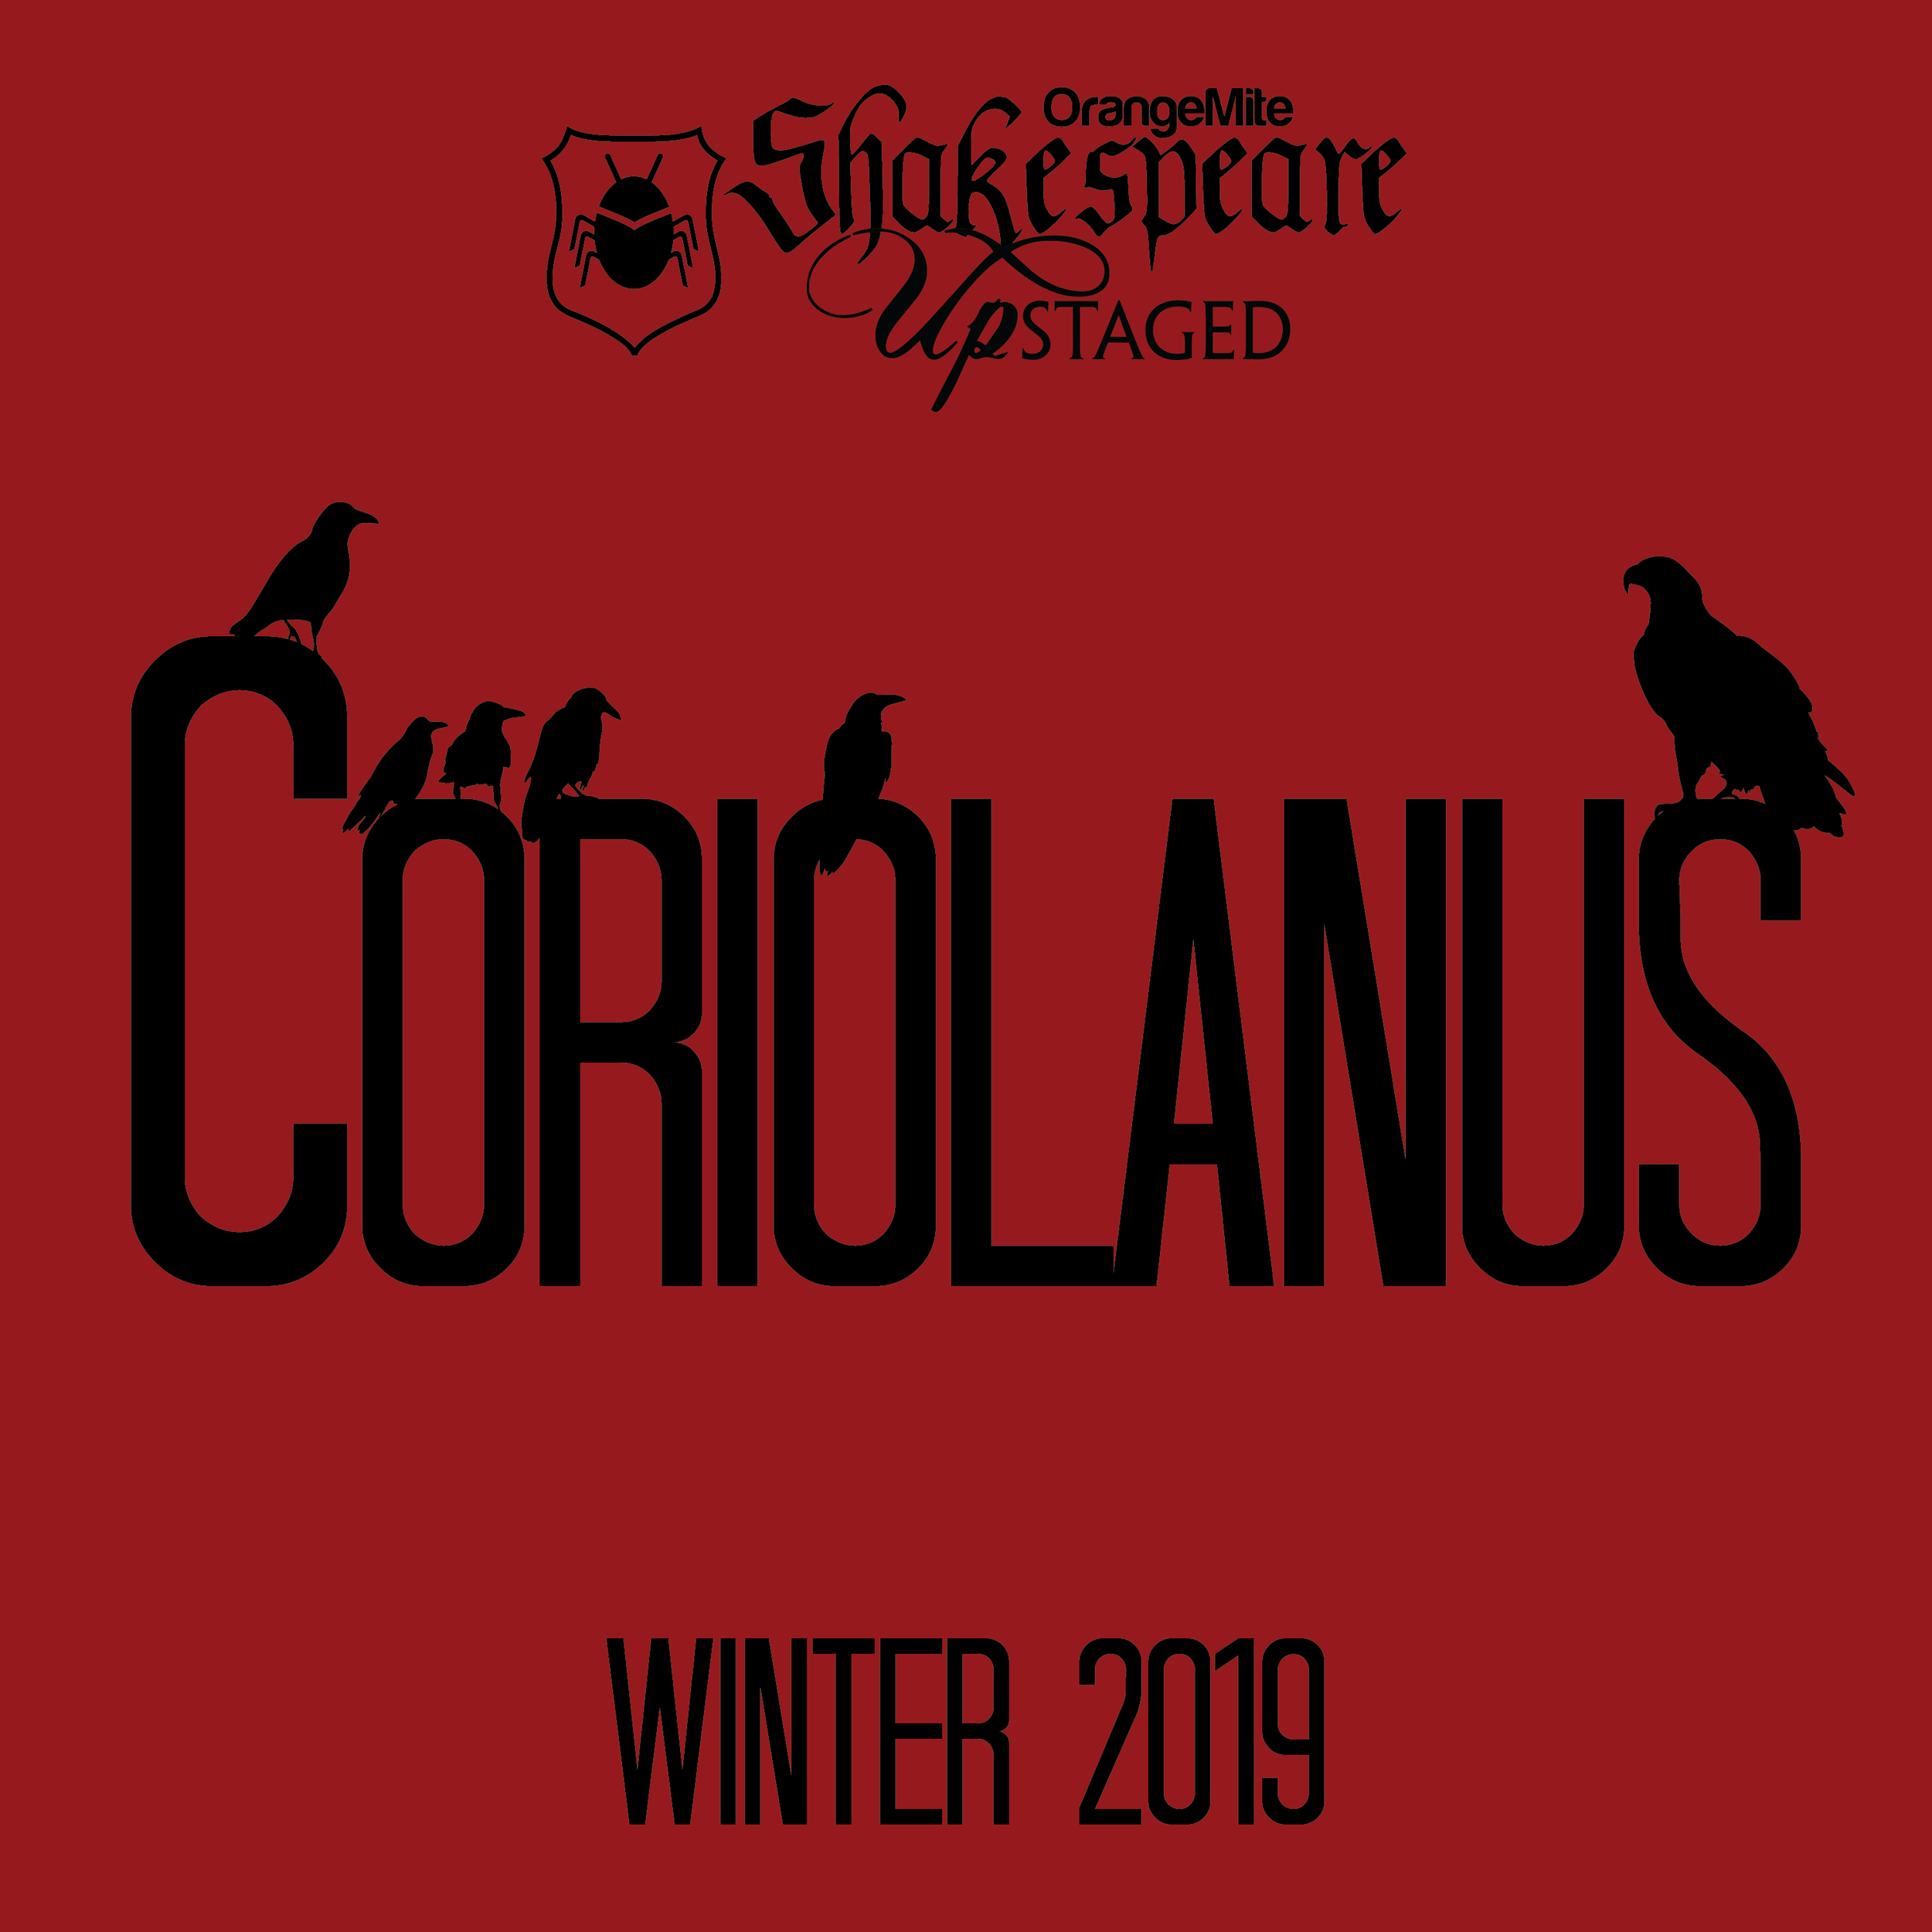 Coriolanus Shows December 2019 -